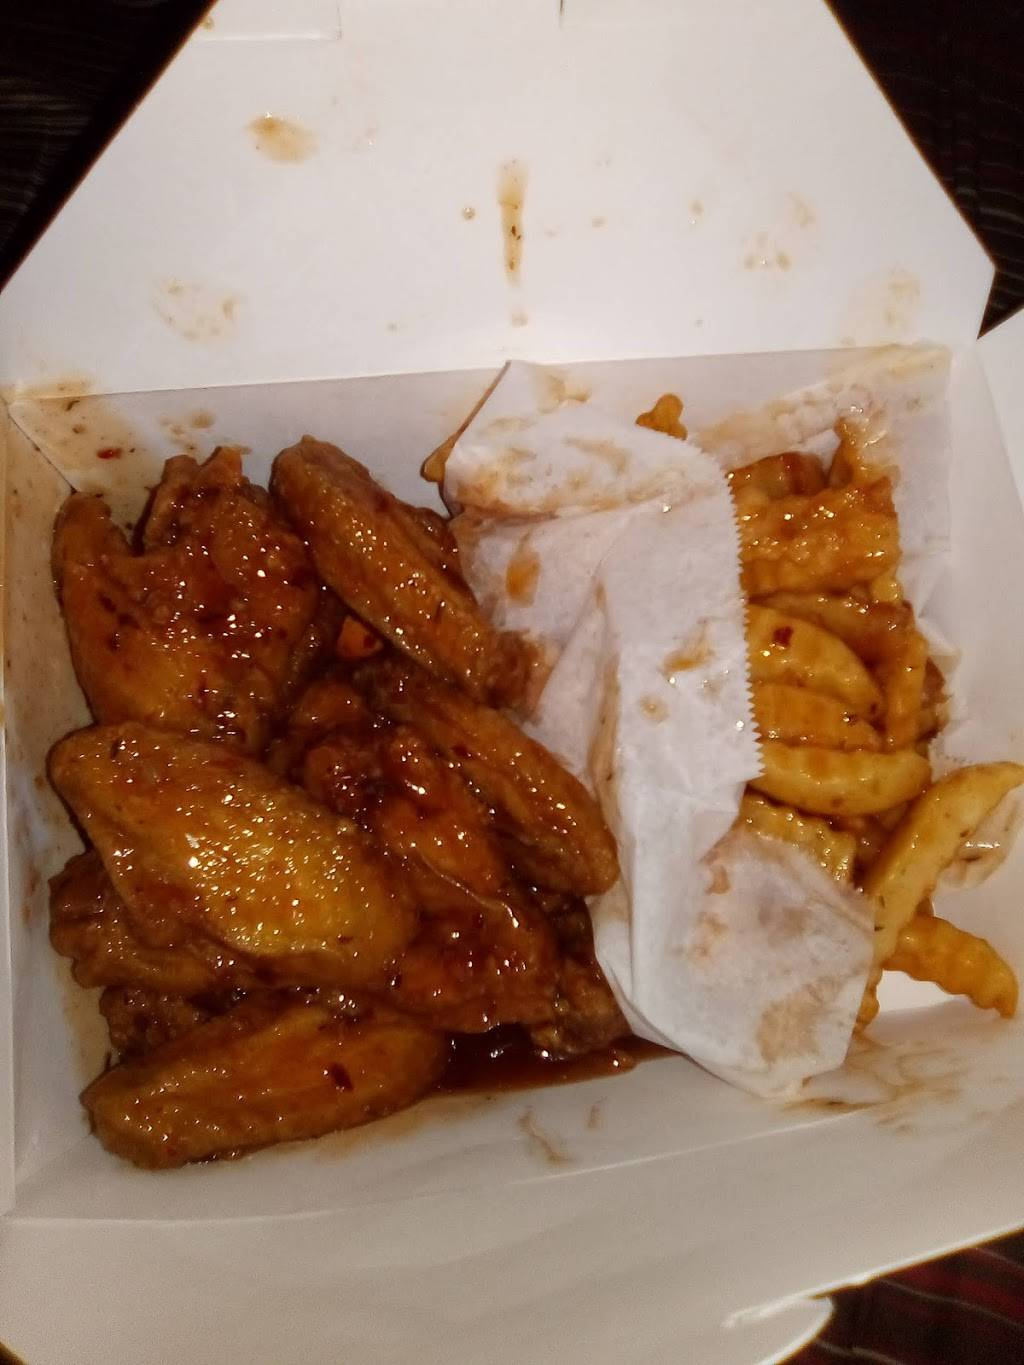 Golden Wingz | restaurant | 14655 Greenfield Rd, Detroit, MI 48227, USA | 3133978383 OR +1 313-397-8383